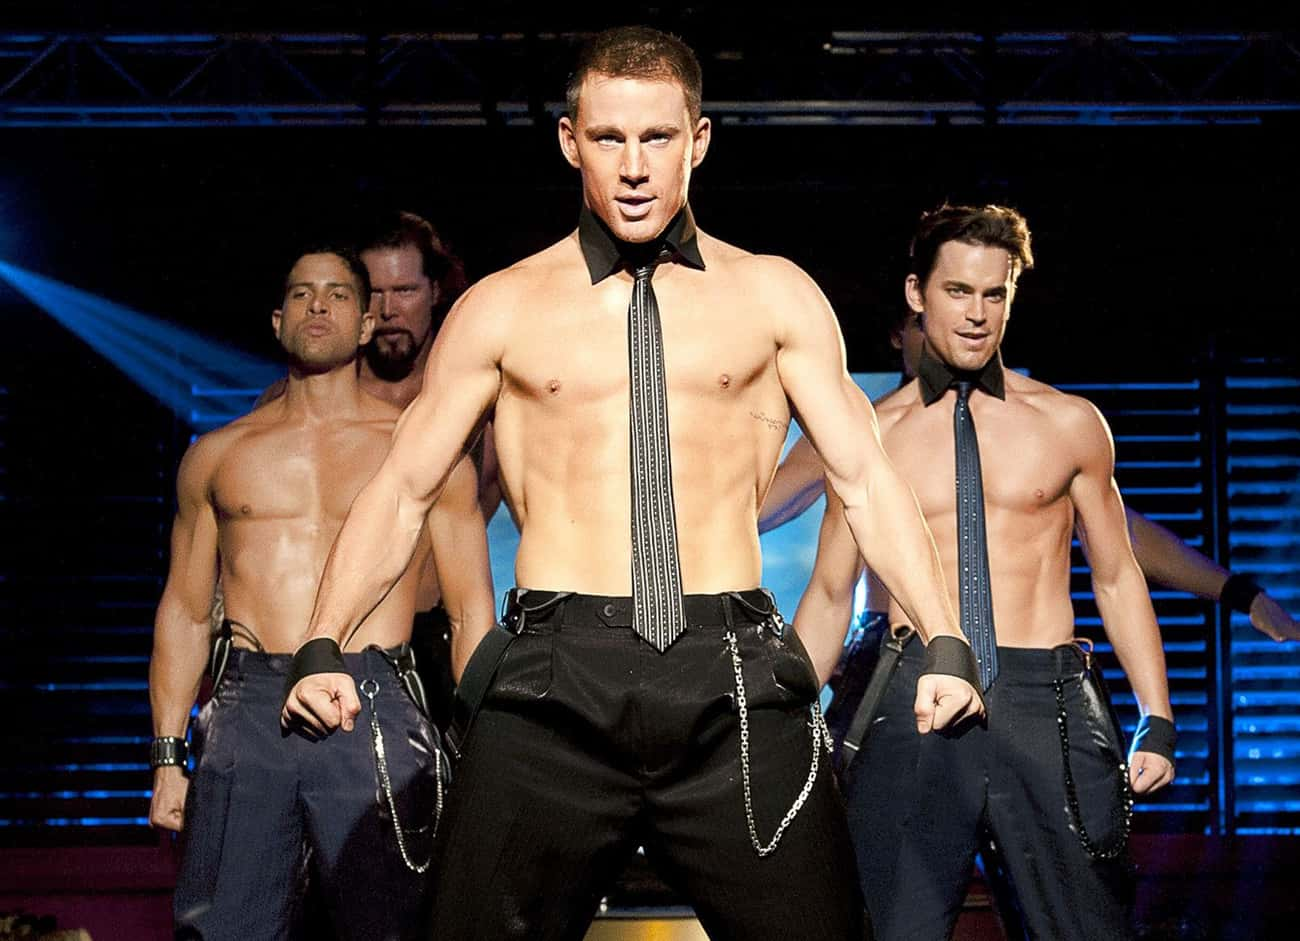 Channing Tatum is listed (or ranked) 4 on the list Male Actors Who Are Definitely Taking Off Their Shirt In Movies